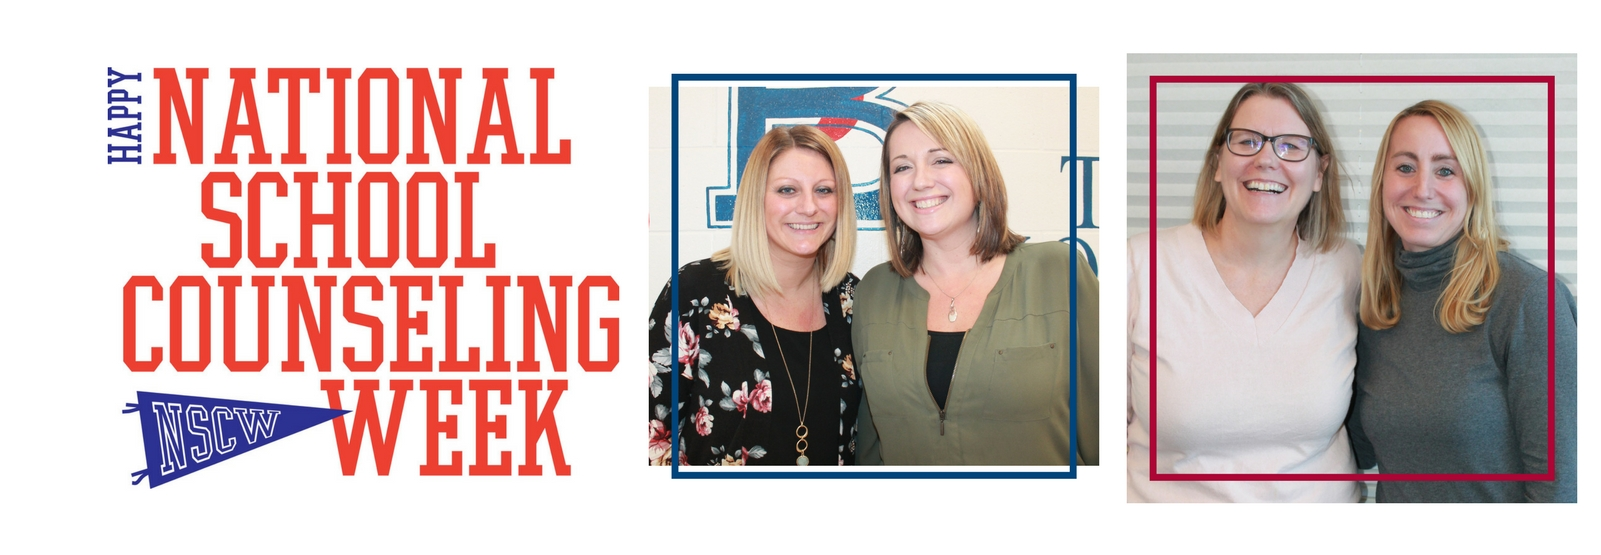 national school counseling week with pictures of four school counselors